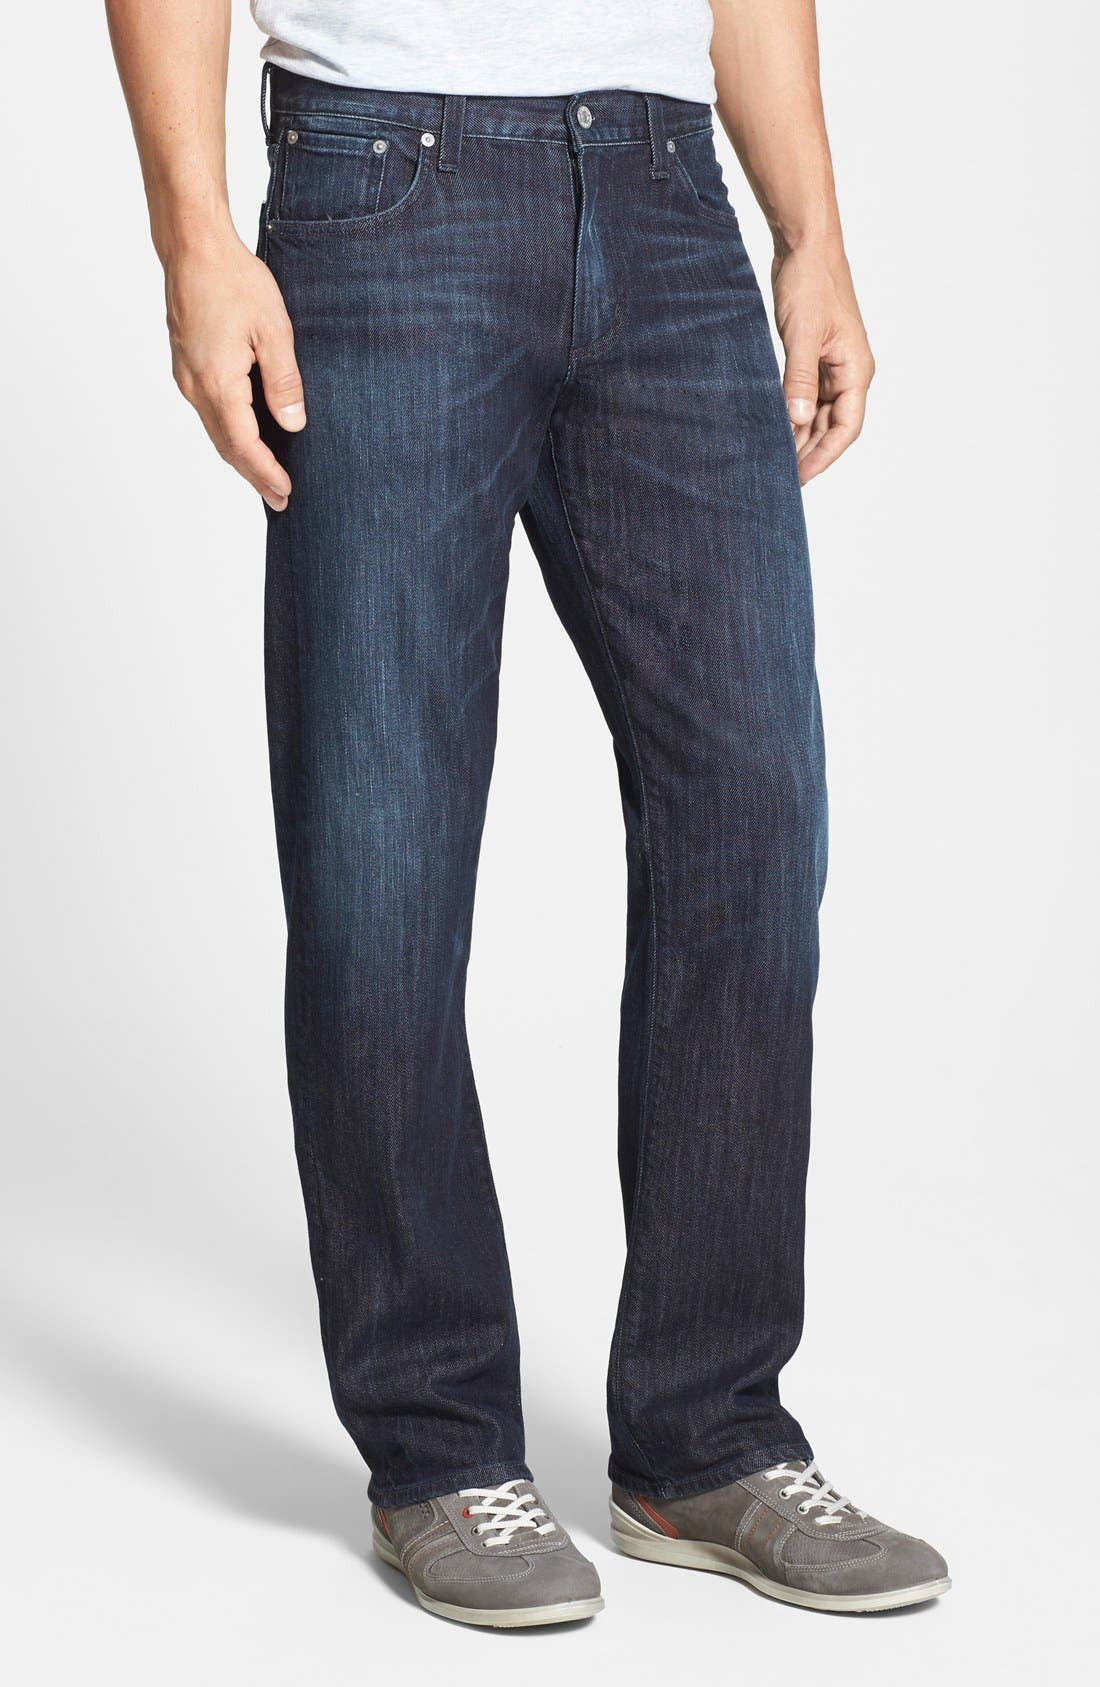 Alternate Image 1 Selected - Citizens of Humanity 'Evans' Relaxed Fit Jeans (Elko)